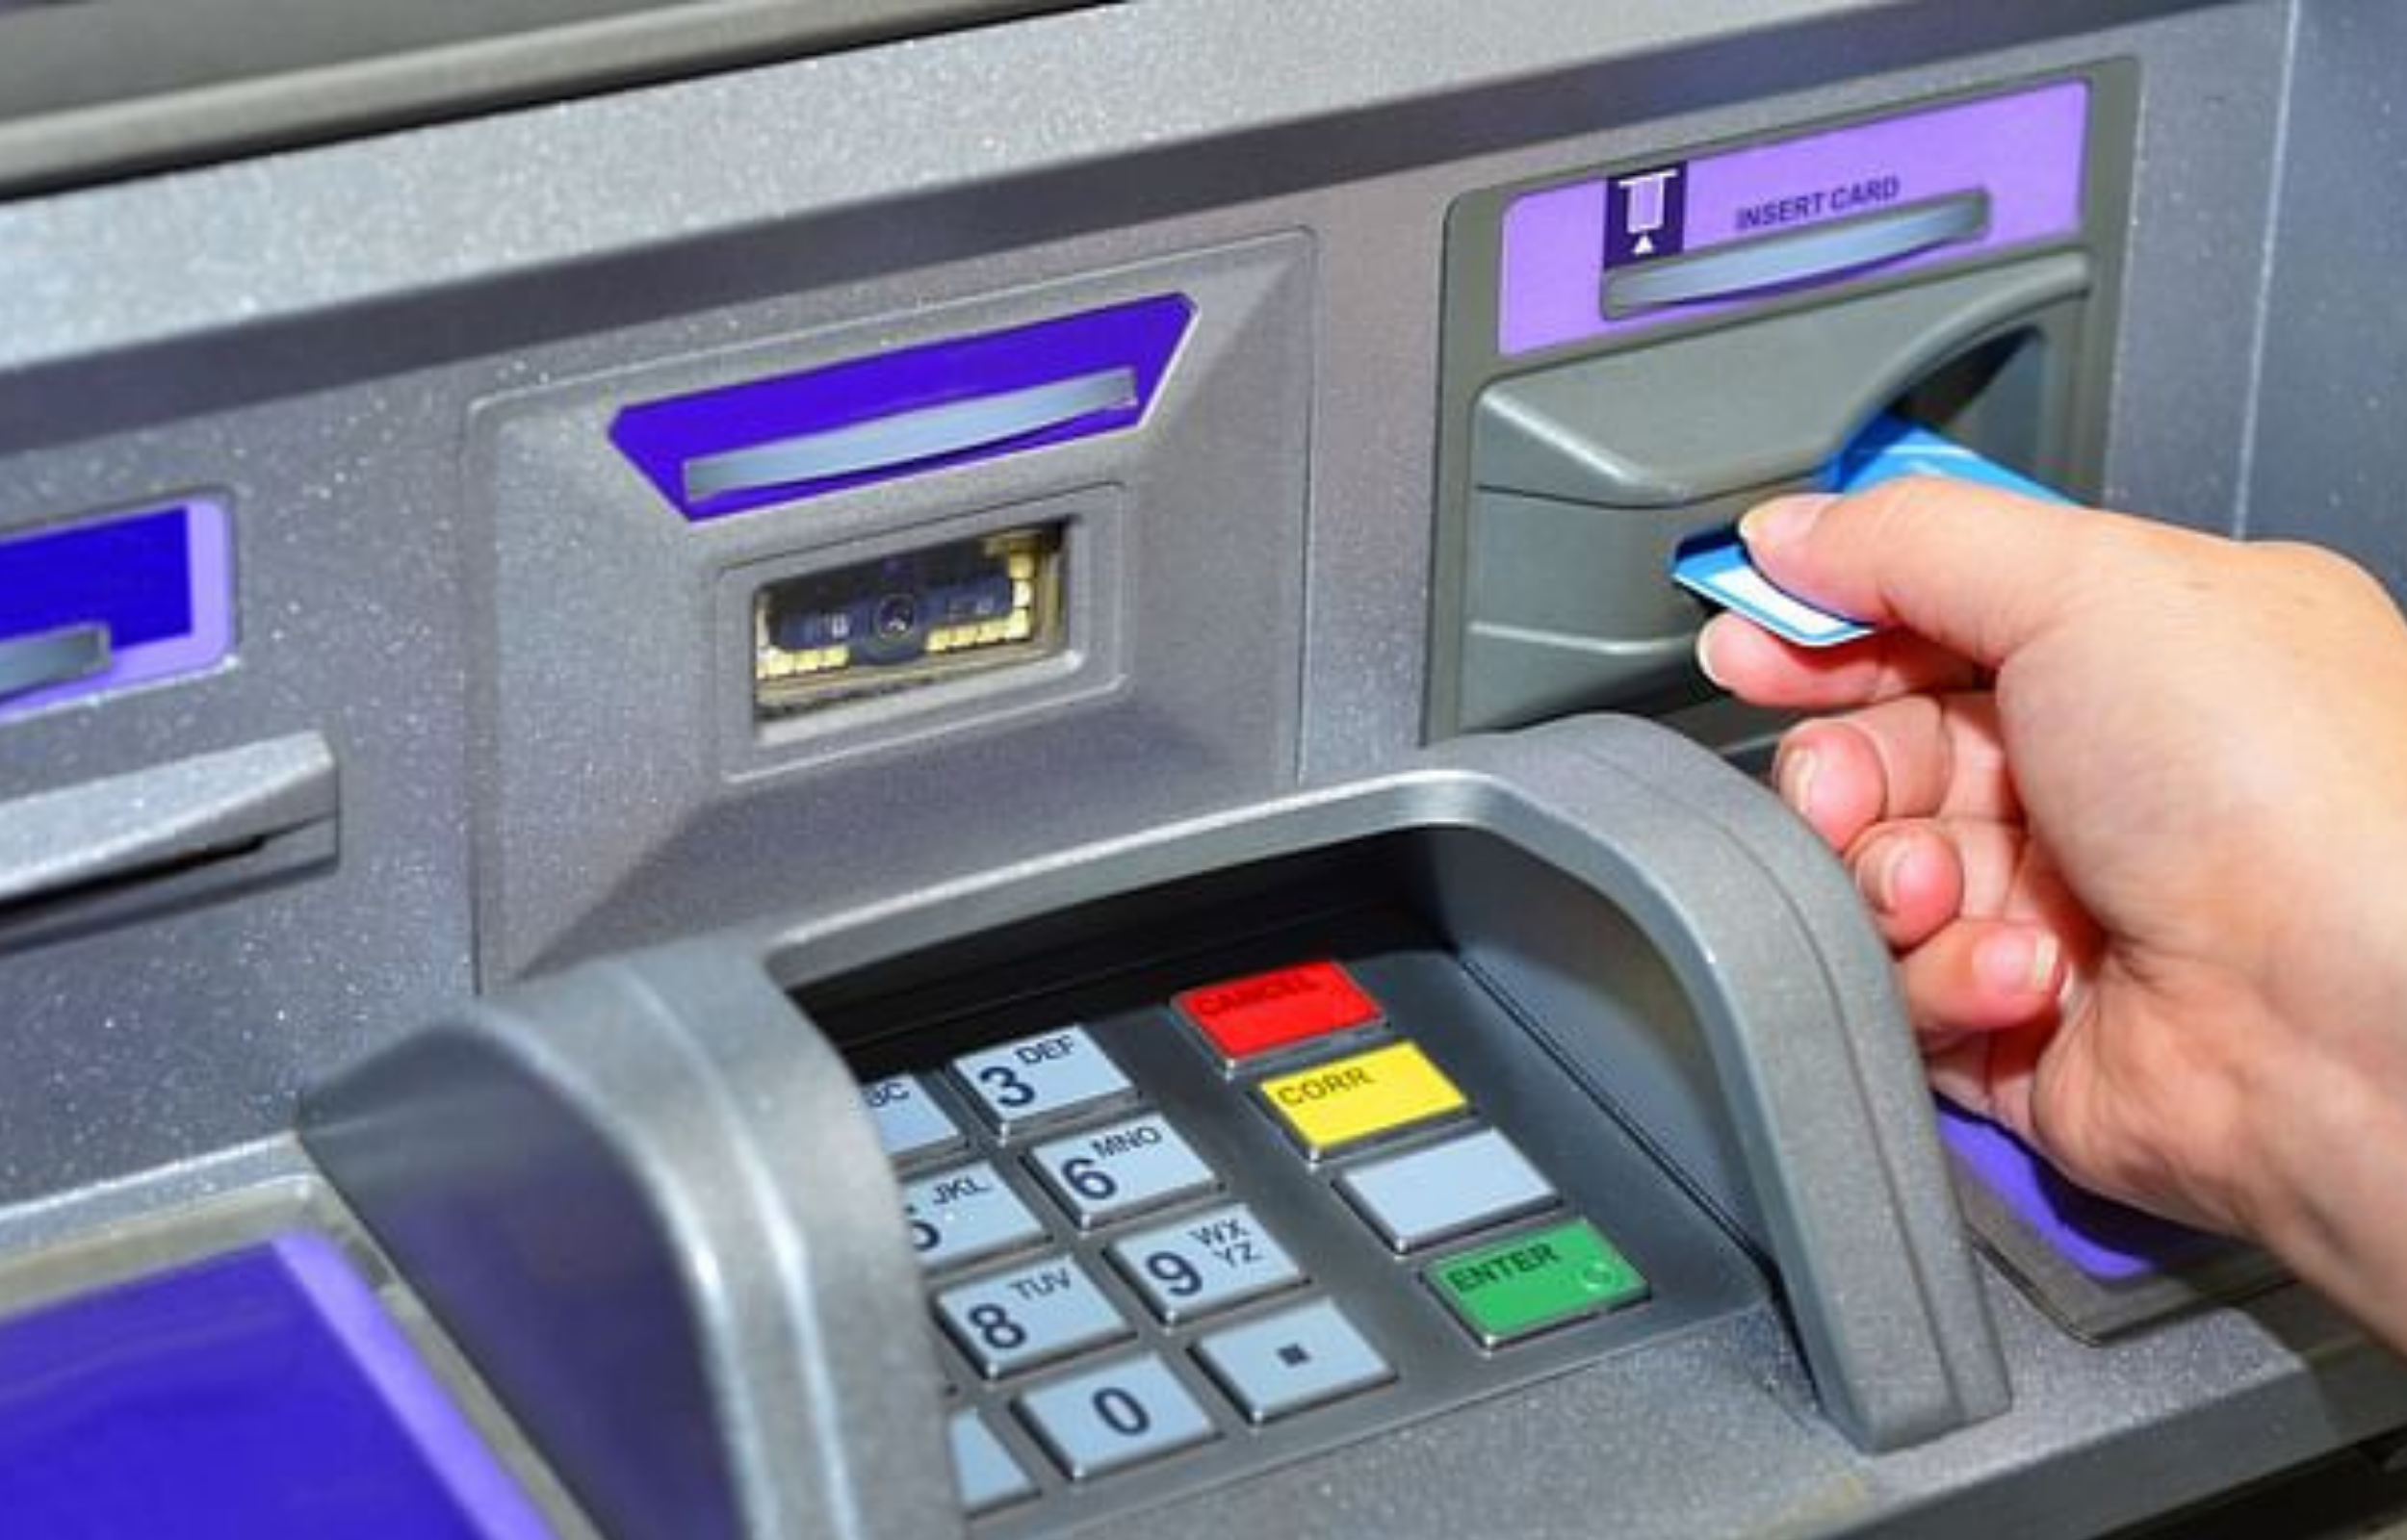 SBI changed its cash withdrawing rules from ATM